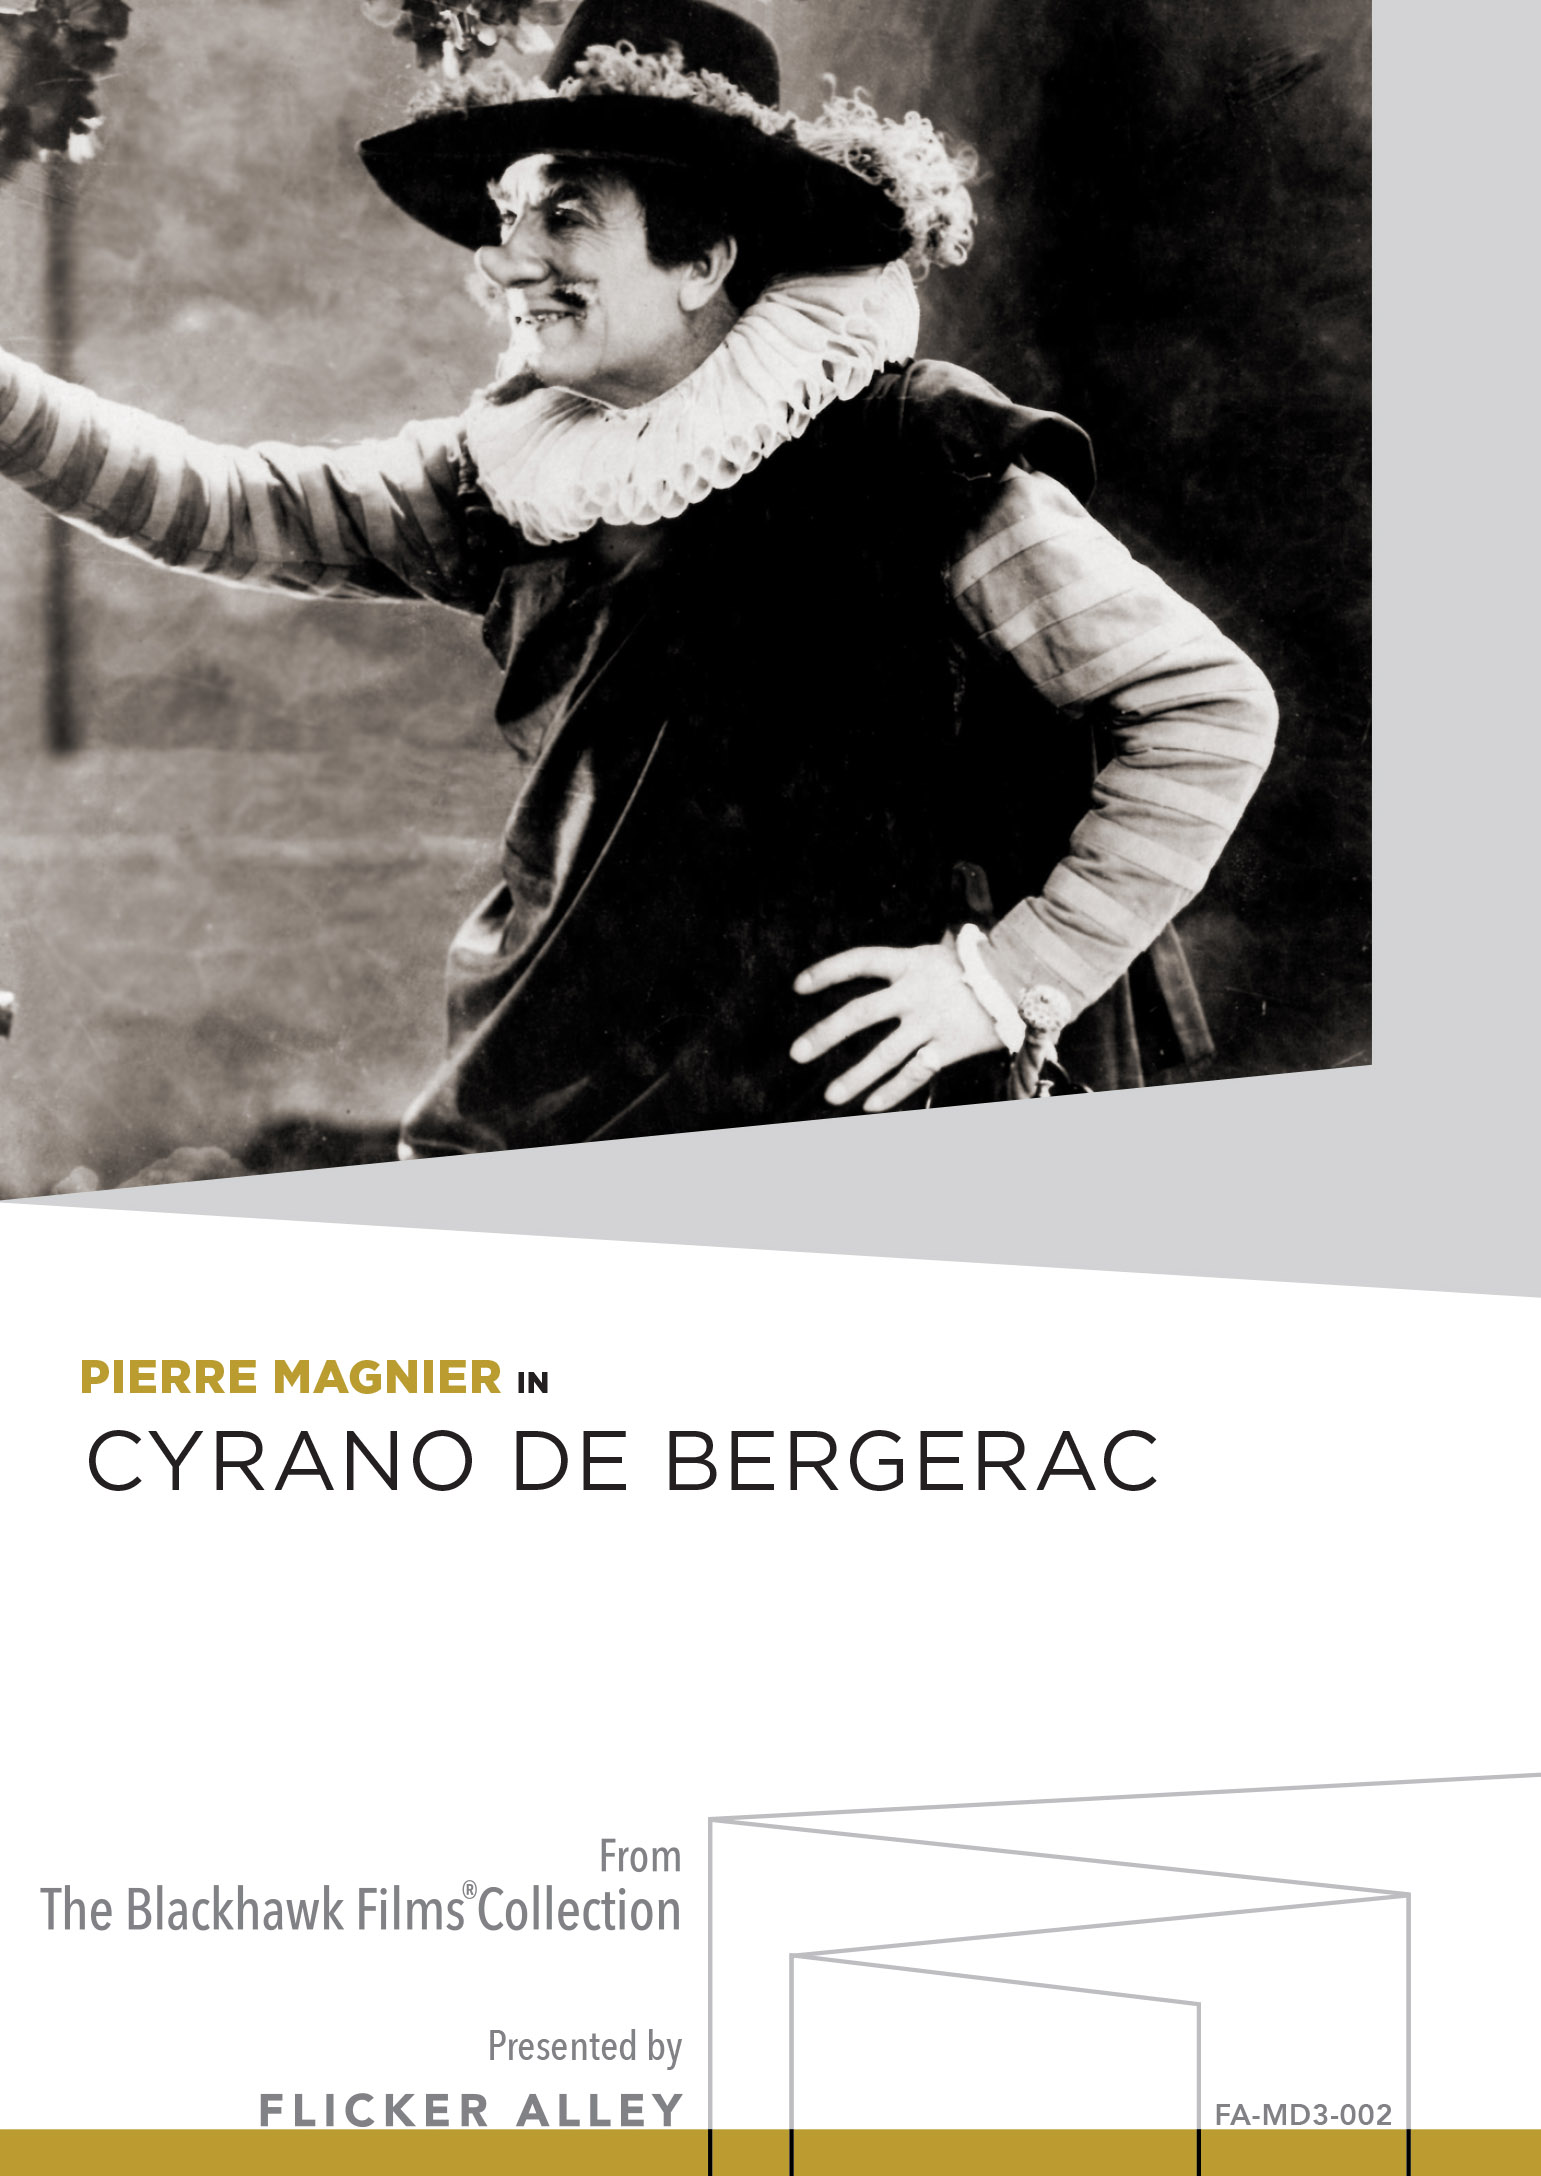 cyrano de bergerac essay thesis Cyrano de bergerac - part 3 - love essay example throughout the play cyrano de bergerac, edmond rostand concentrates on cyrano's adoration of the exquisite roxanne, and his attempts to win her love for the less intelligent but more attractive christian.